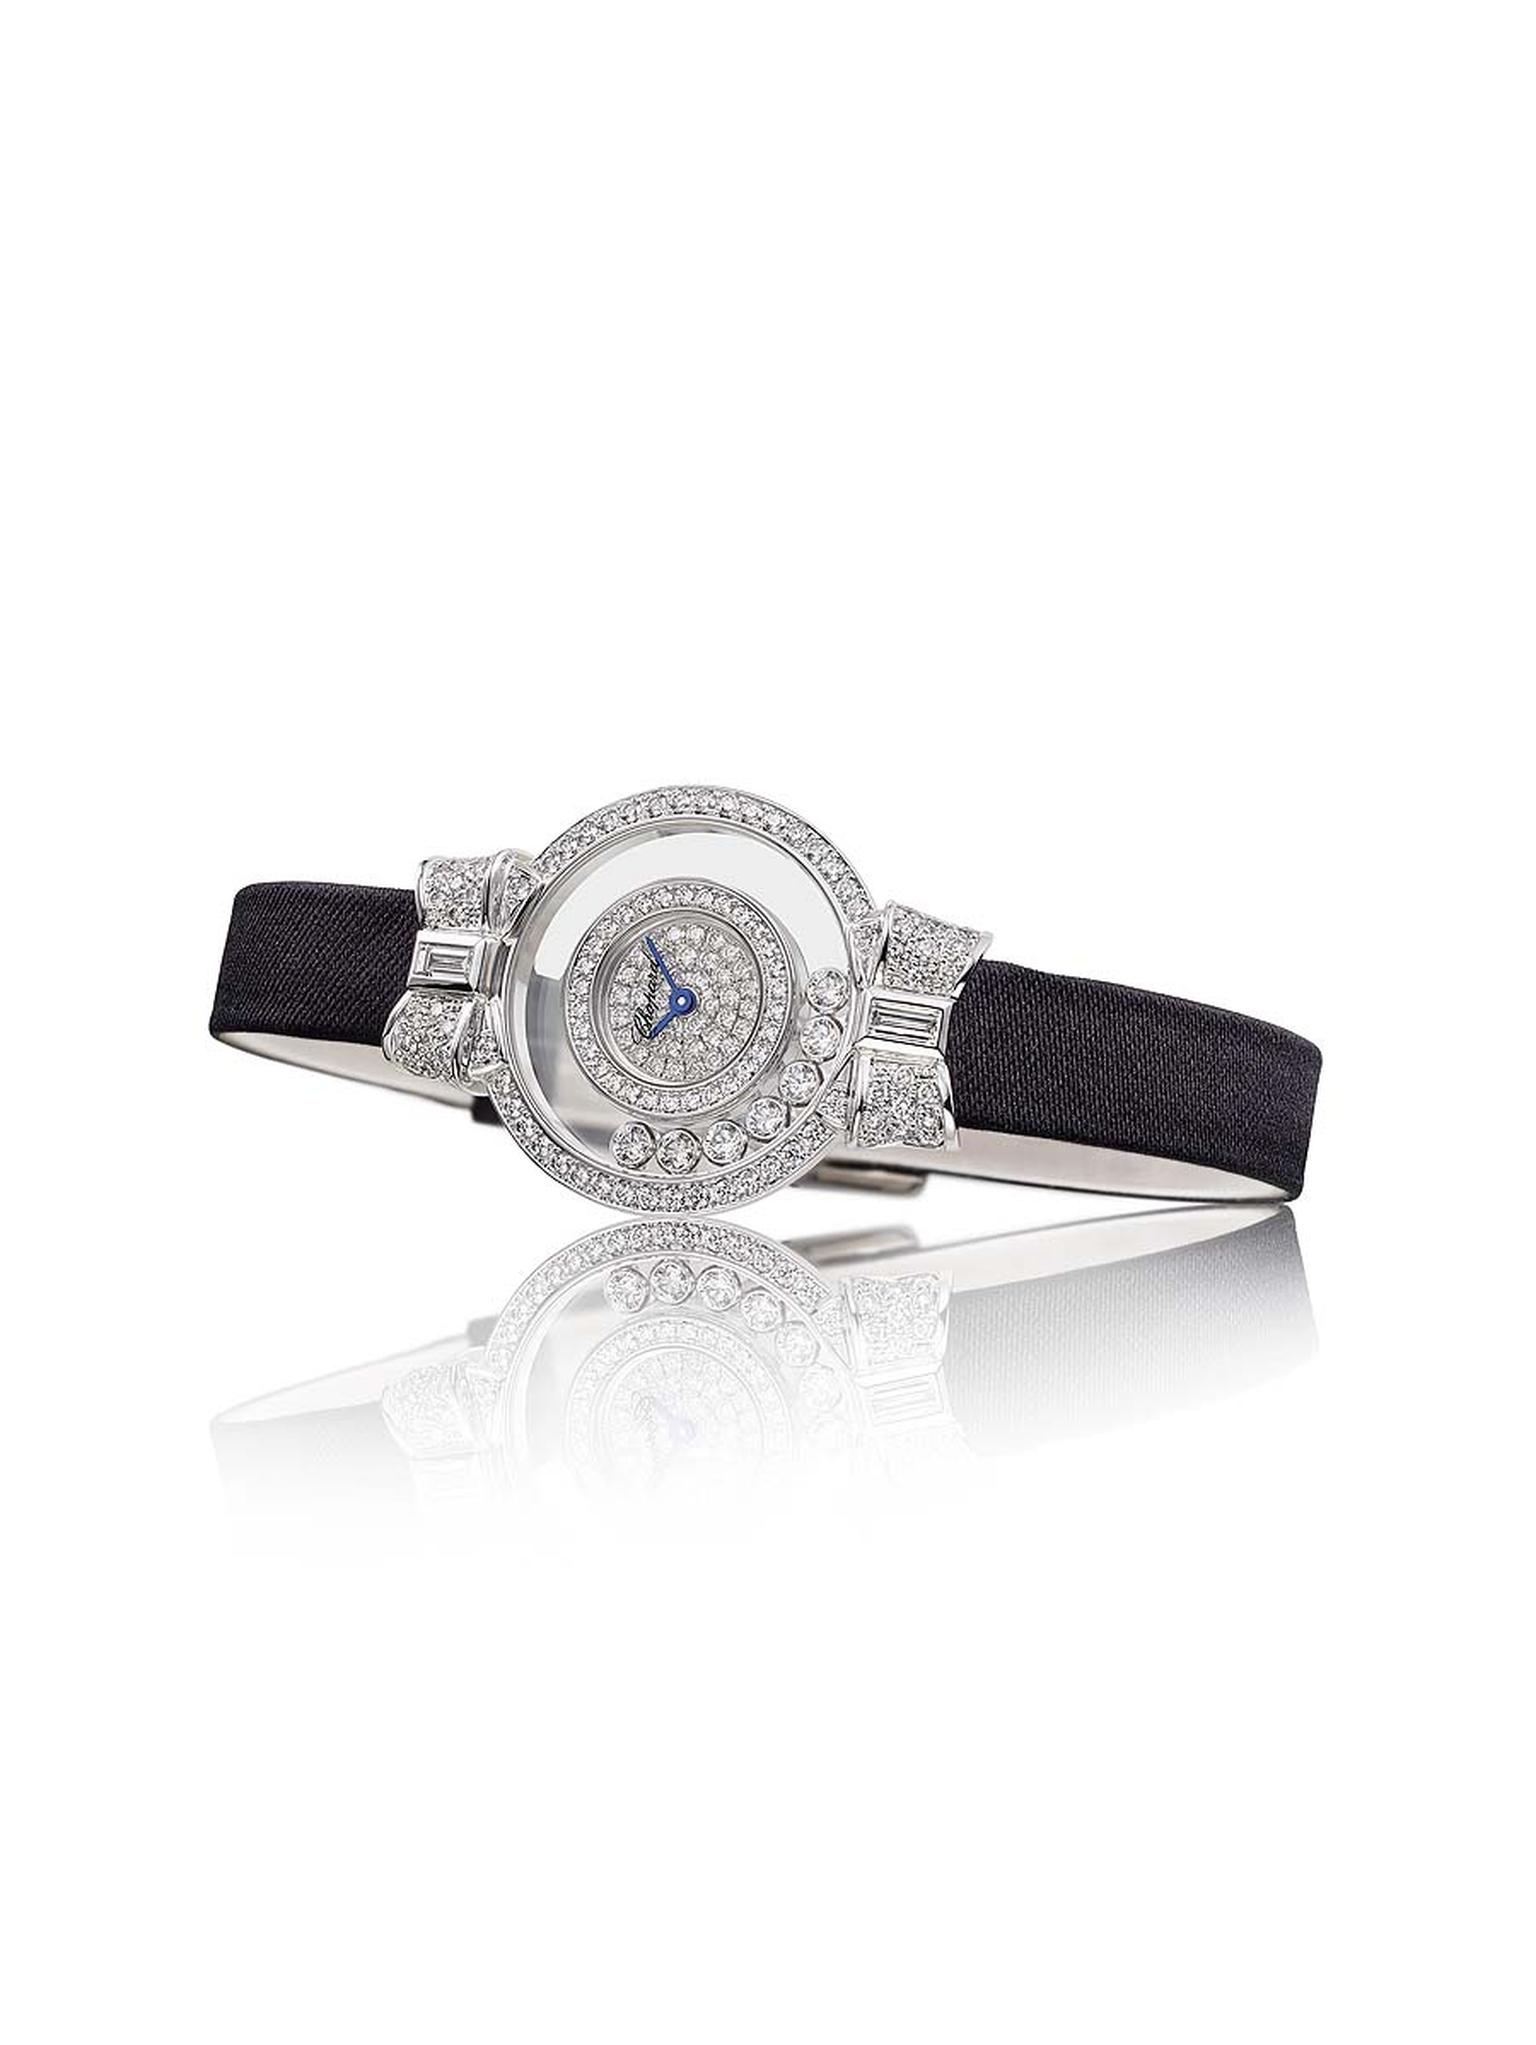 ChopardDianaFilmjewels004